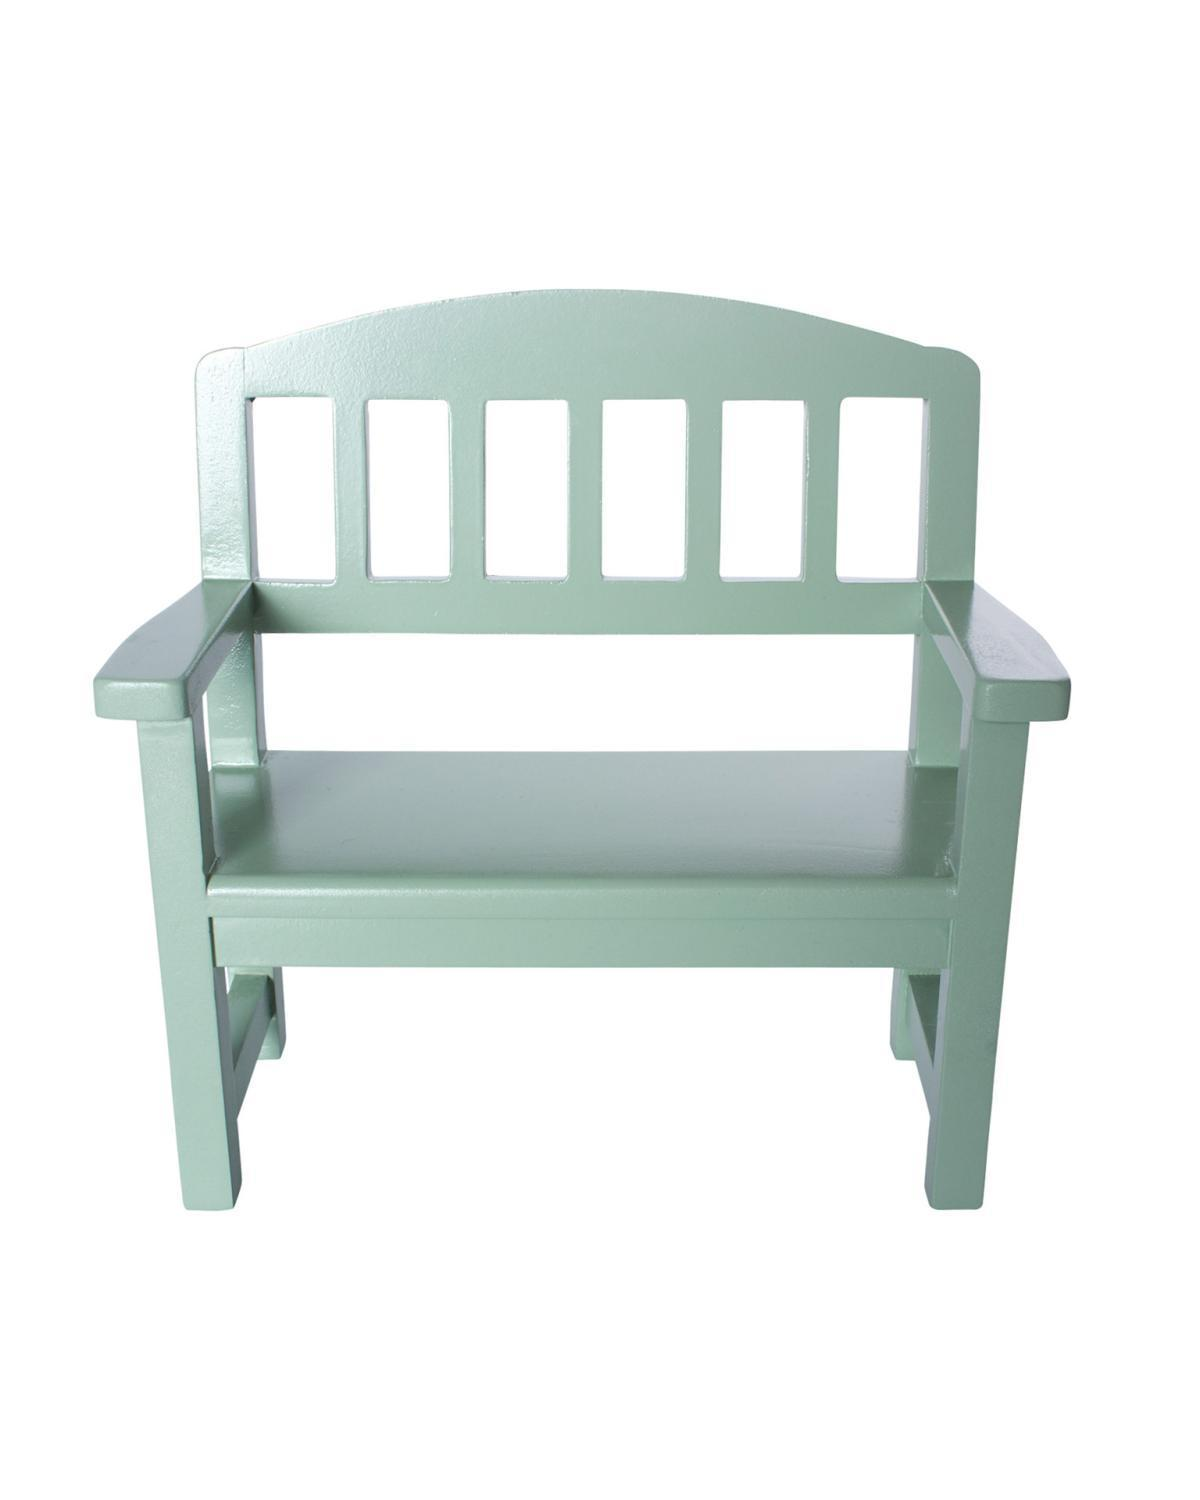 Little maileg play wooden bench in green